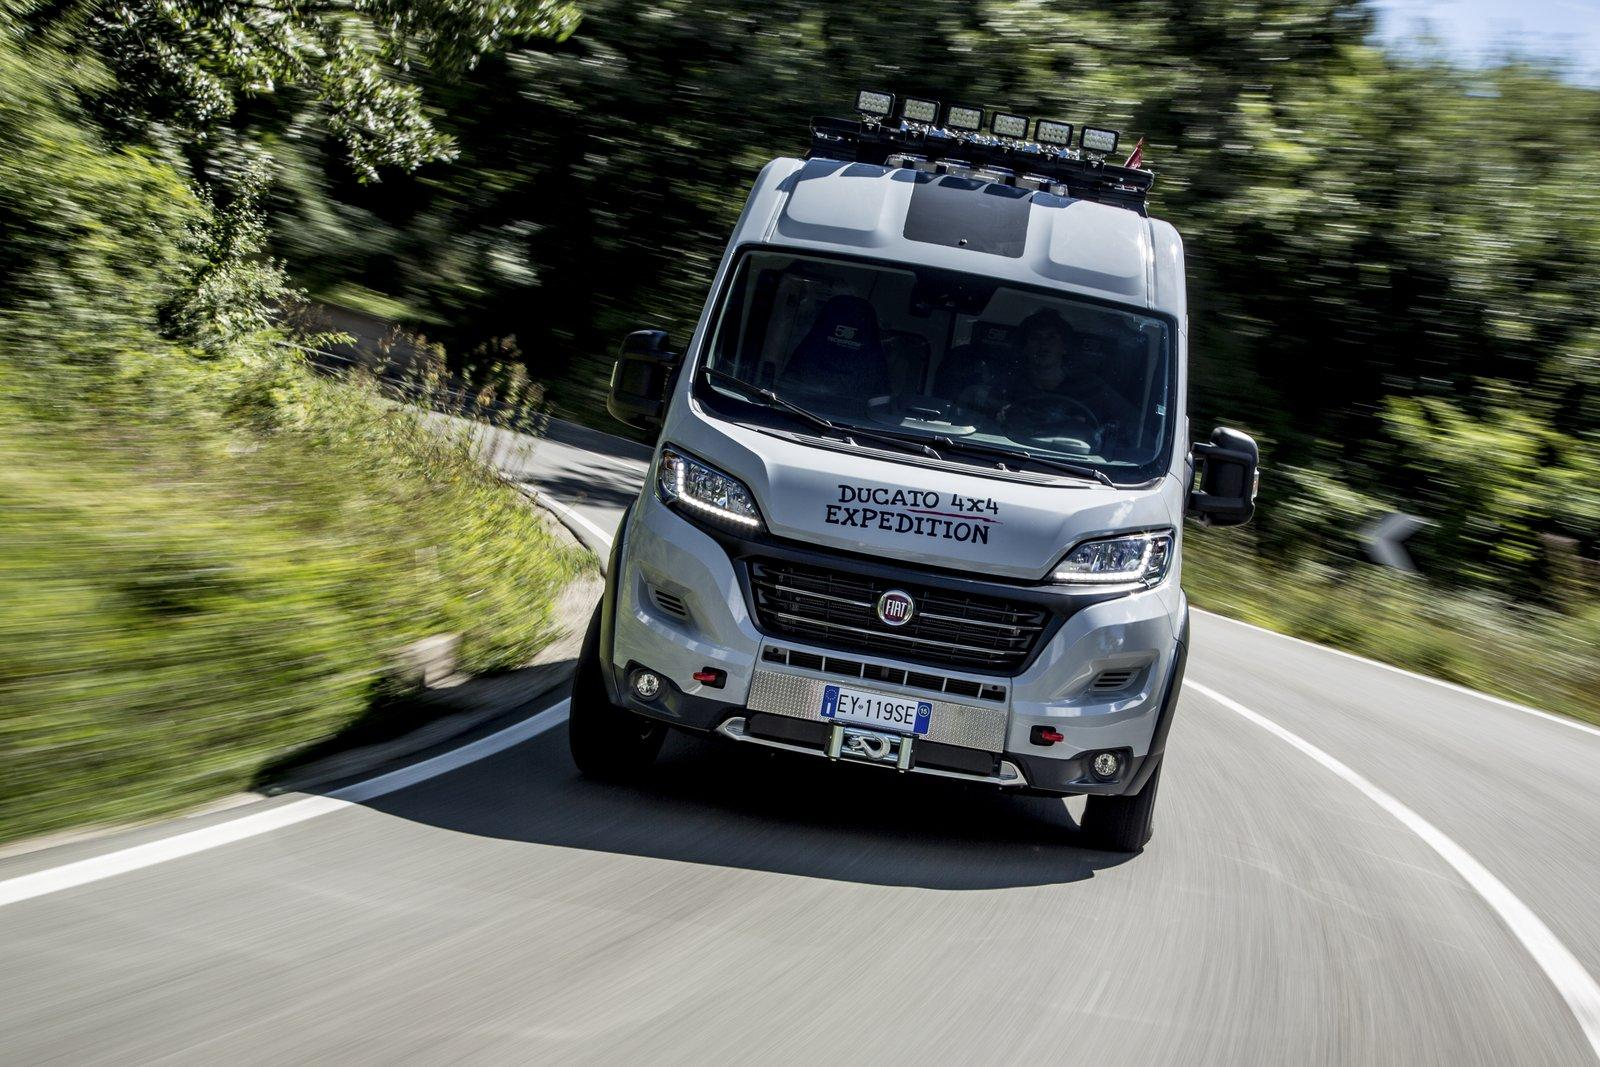 fiat ducato 4x4 expedition will take you camping where no. Black Bedroom Furniture Sets. Home Design Ideas